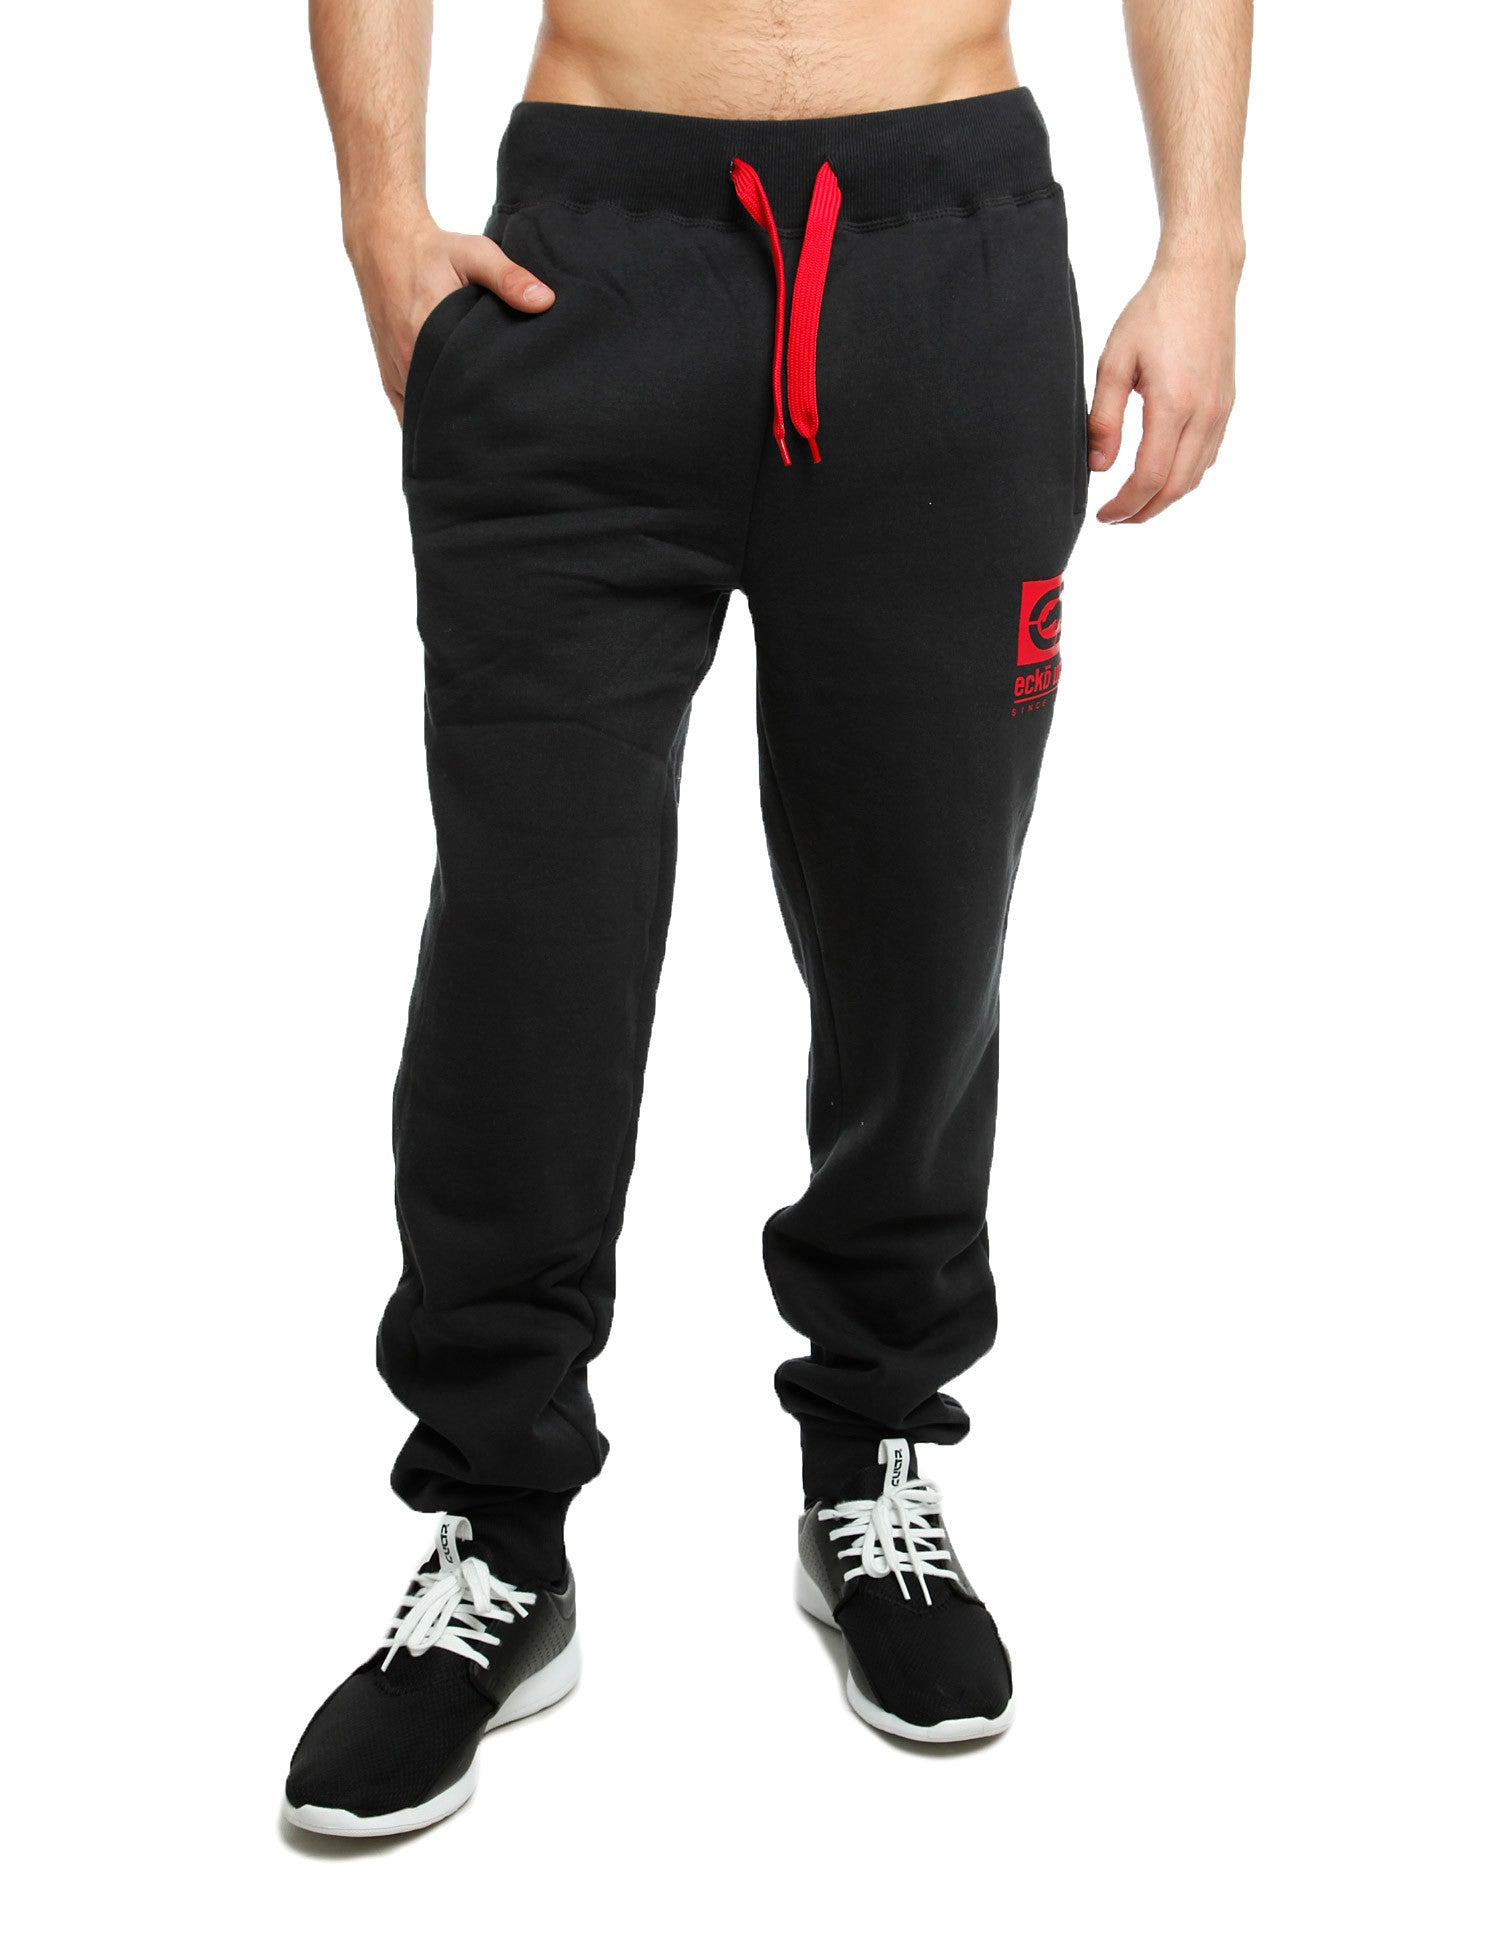 Image of Ecko Sweatpants Barking Black Grey